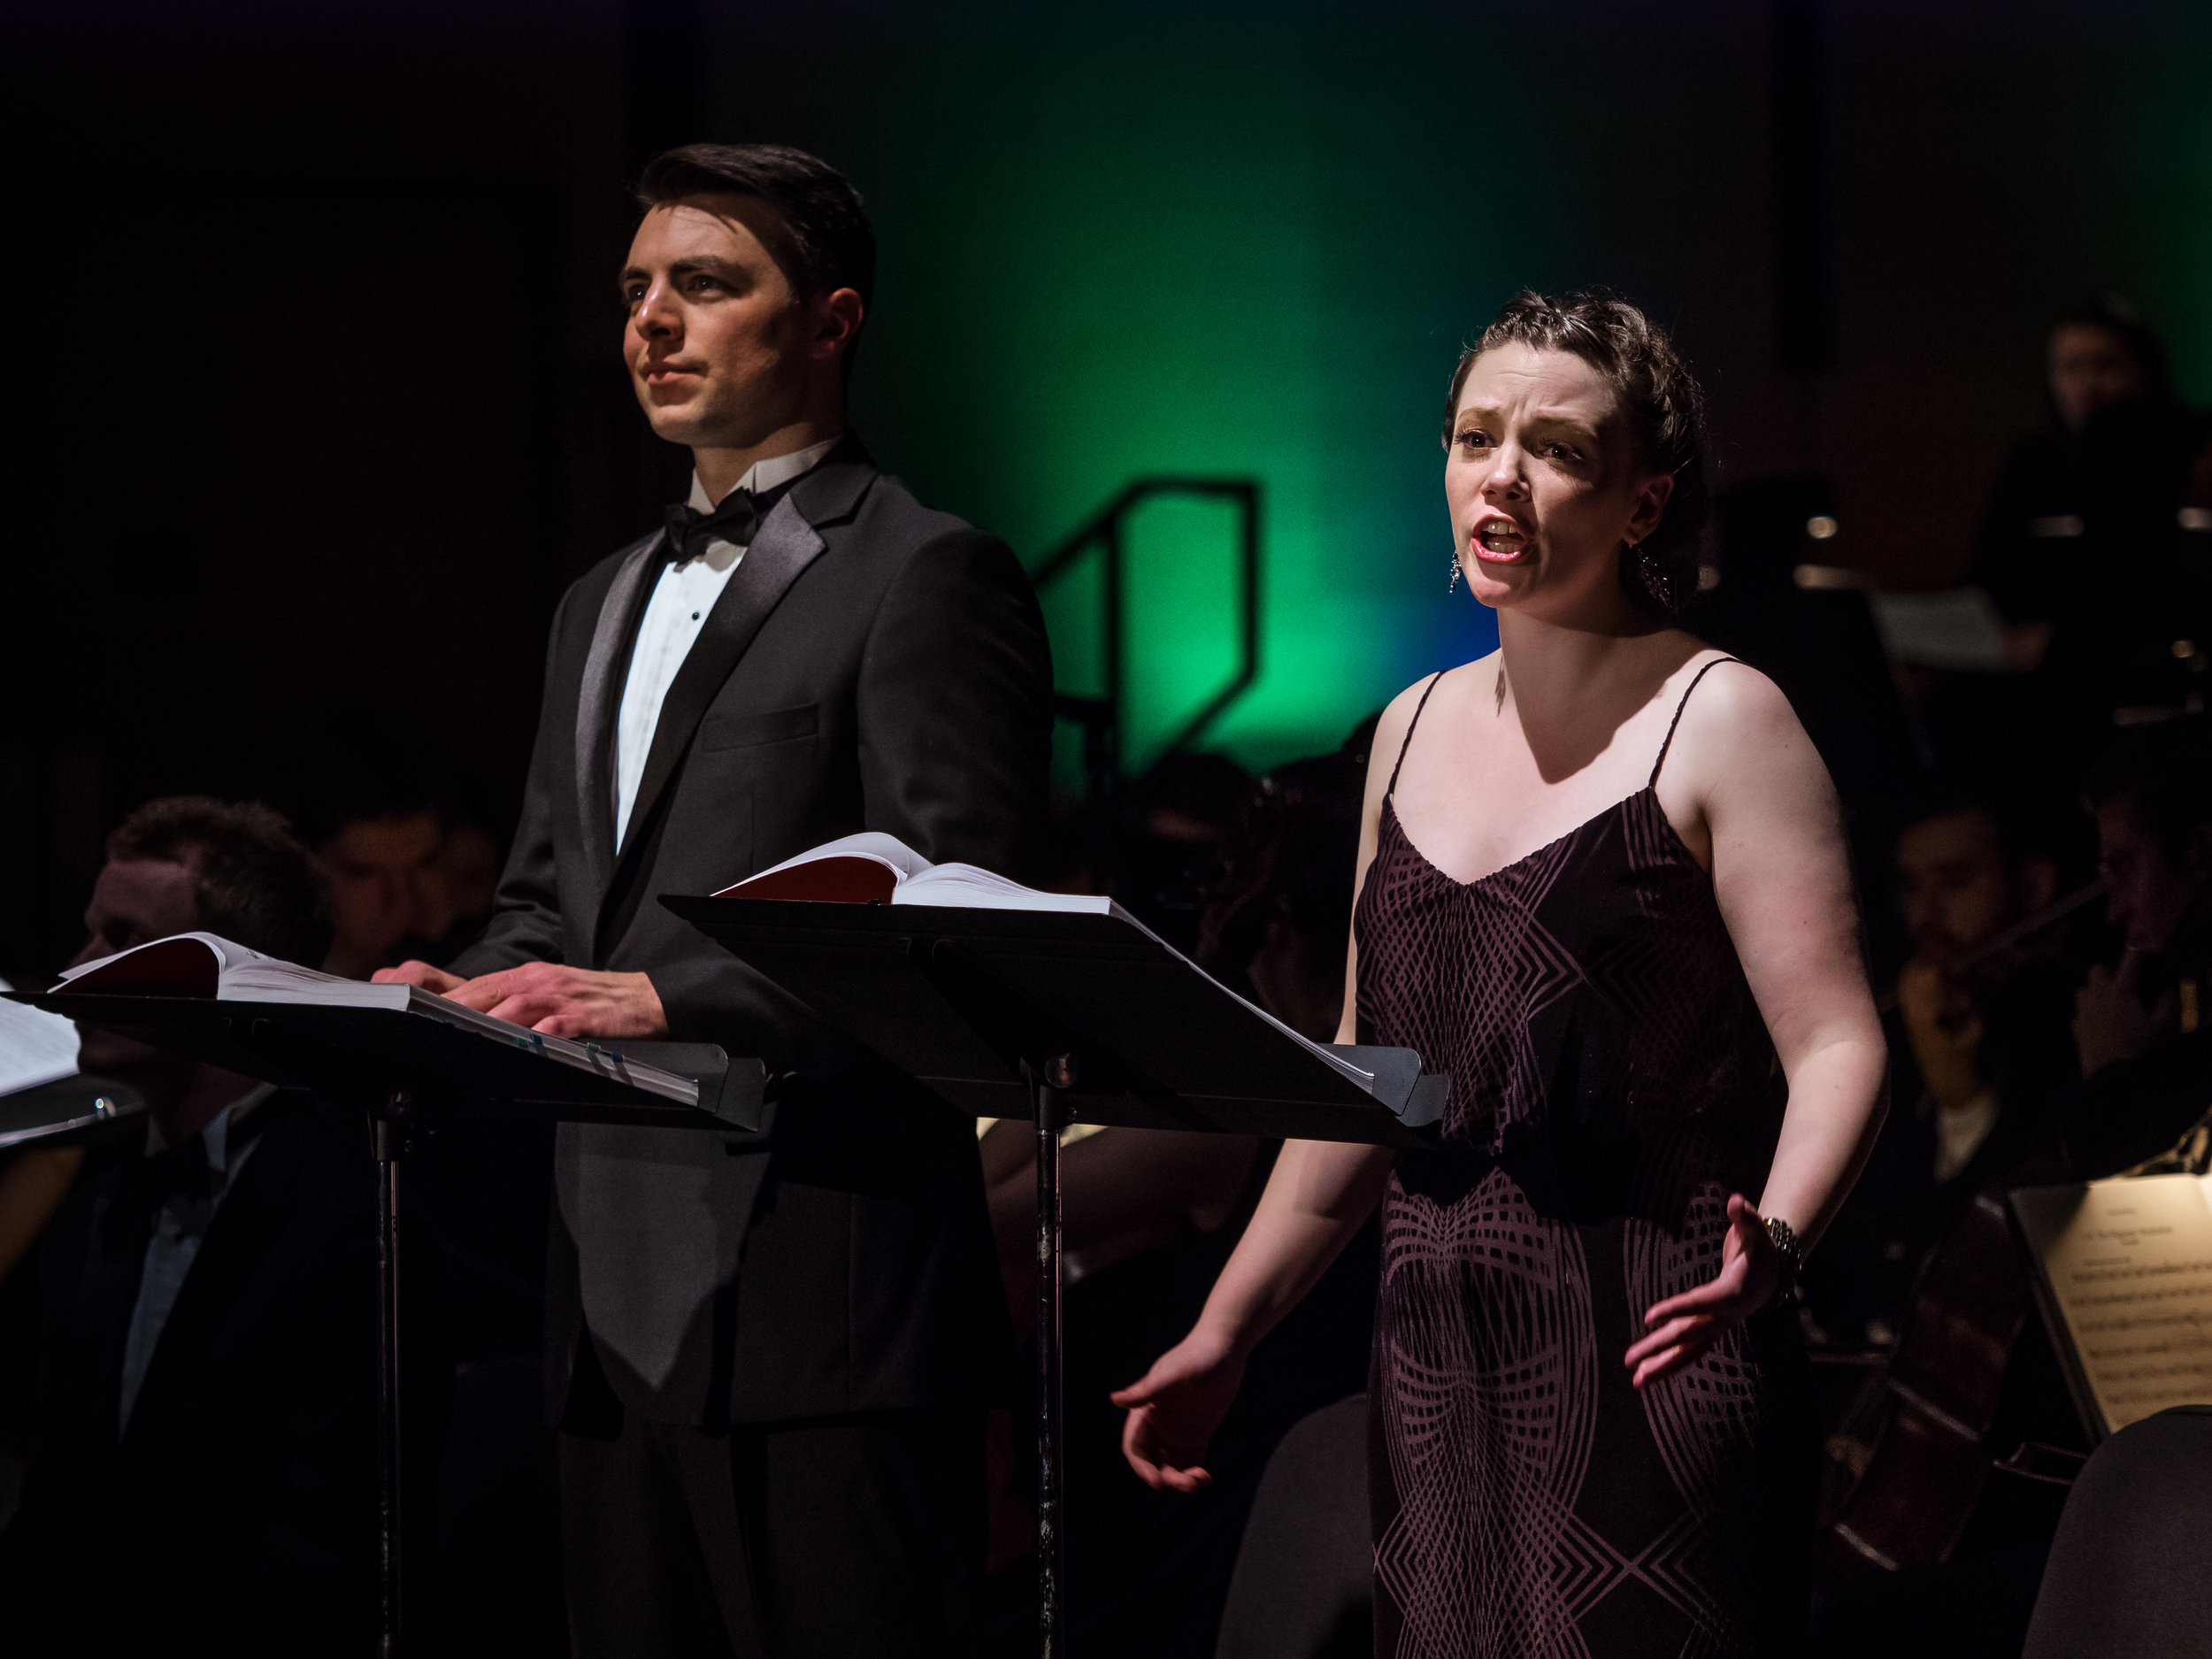 Luke Macmillan and Elaine Daiber as Maximillian and Paquette in Leonard Bernstein's 'Candide'